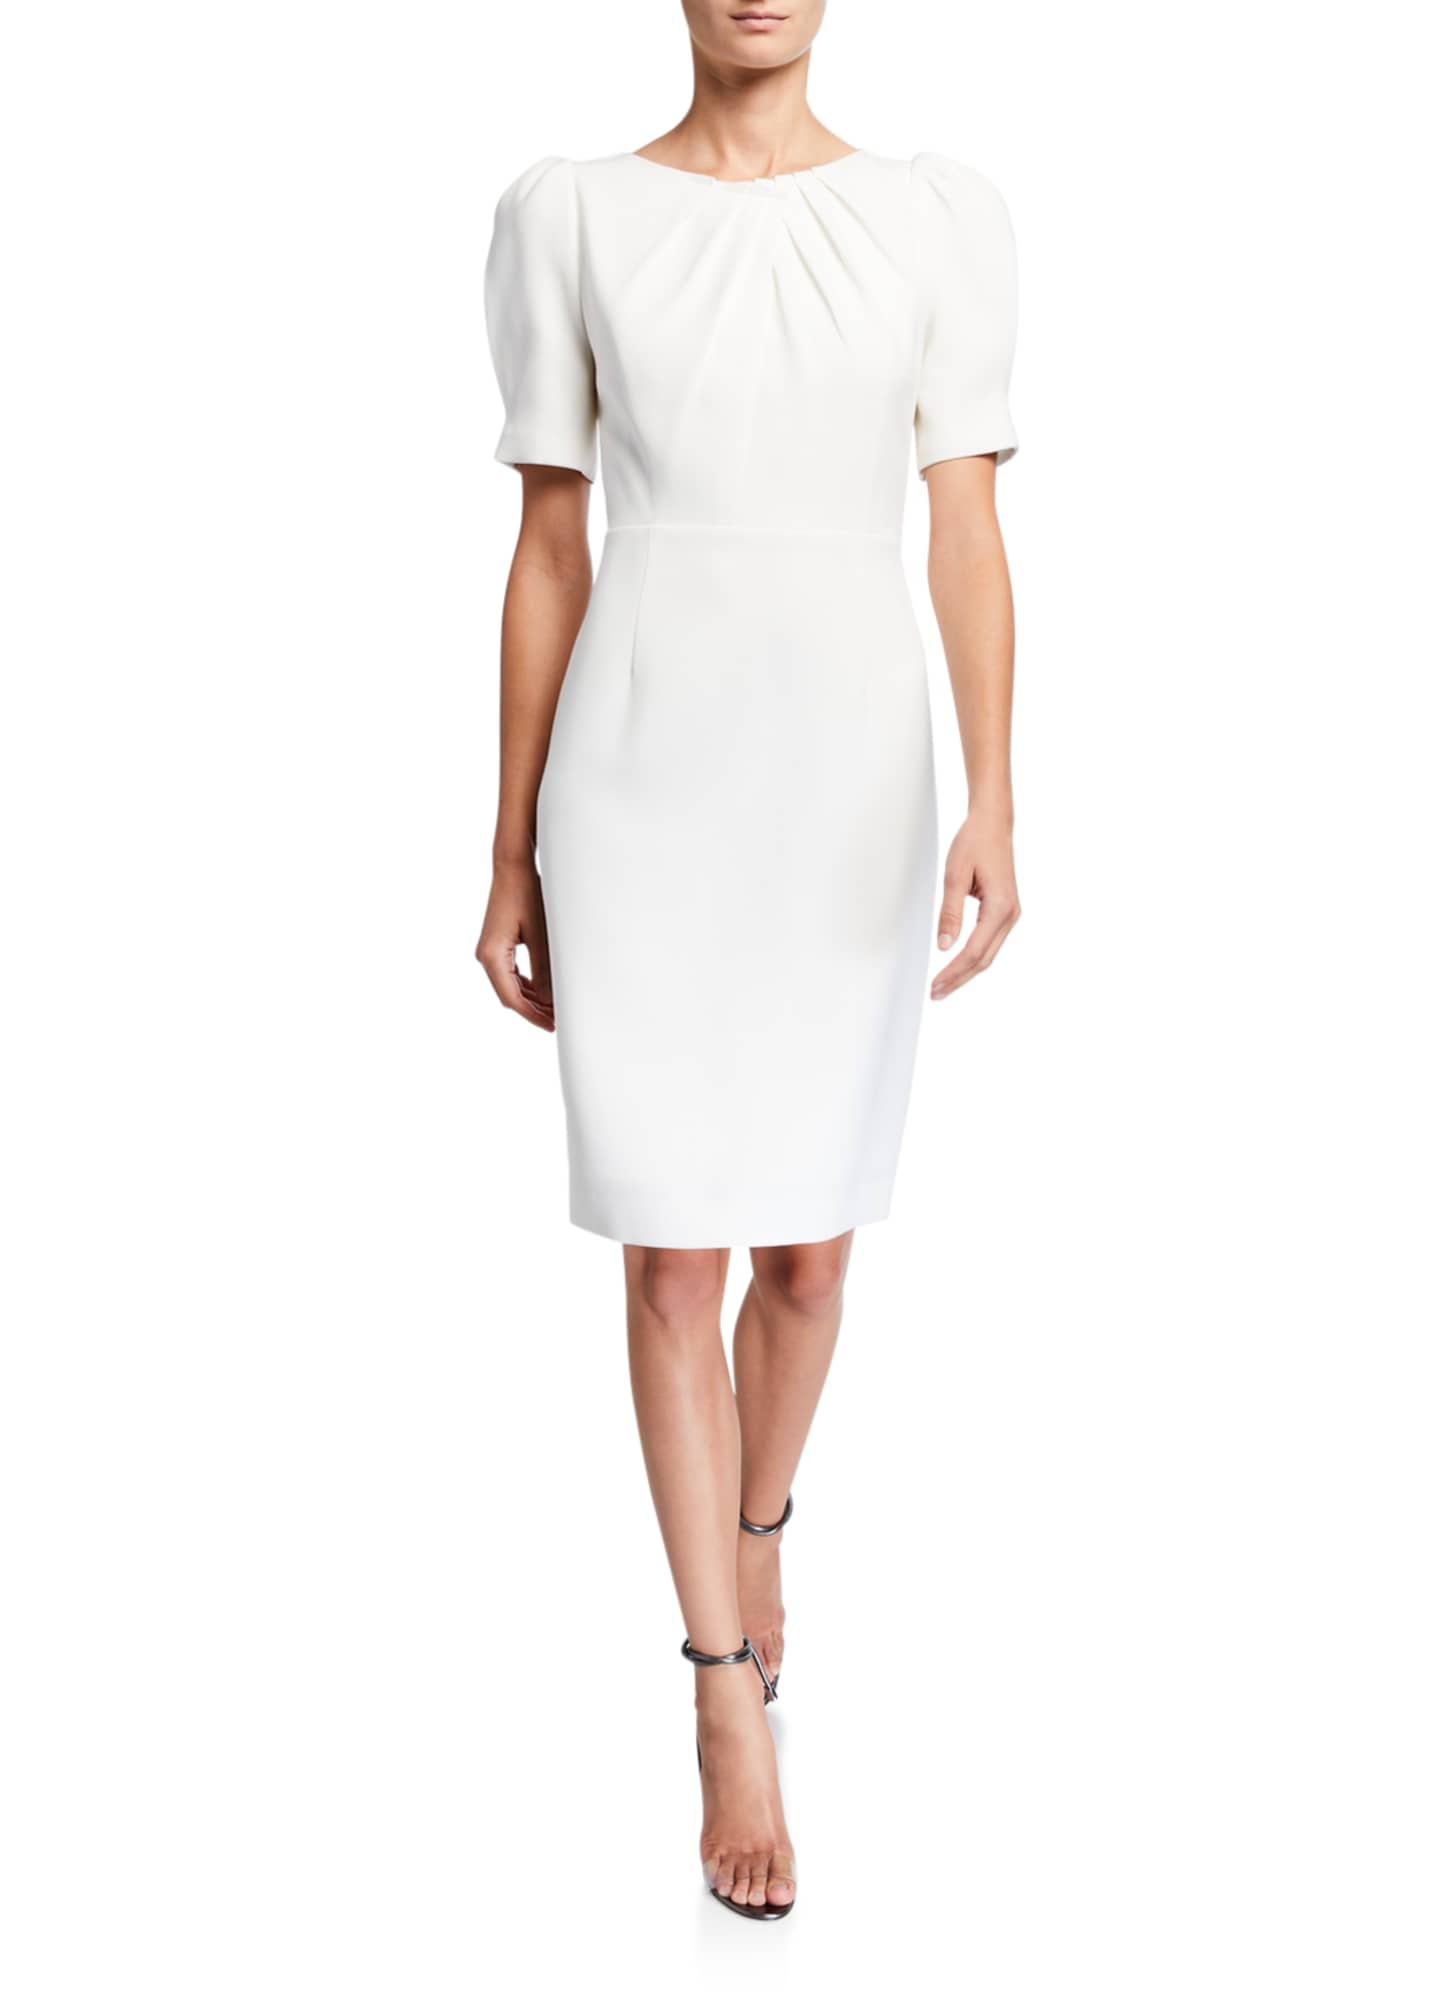 Elie Tahari Delphine Short-Sleeve Sheath Dress